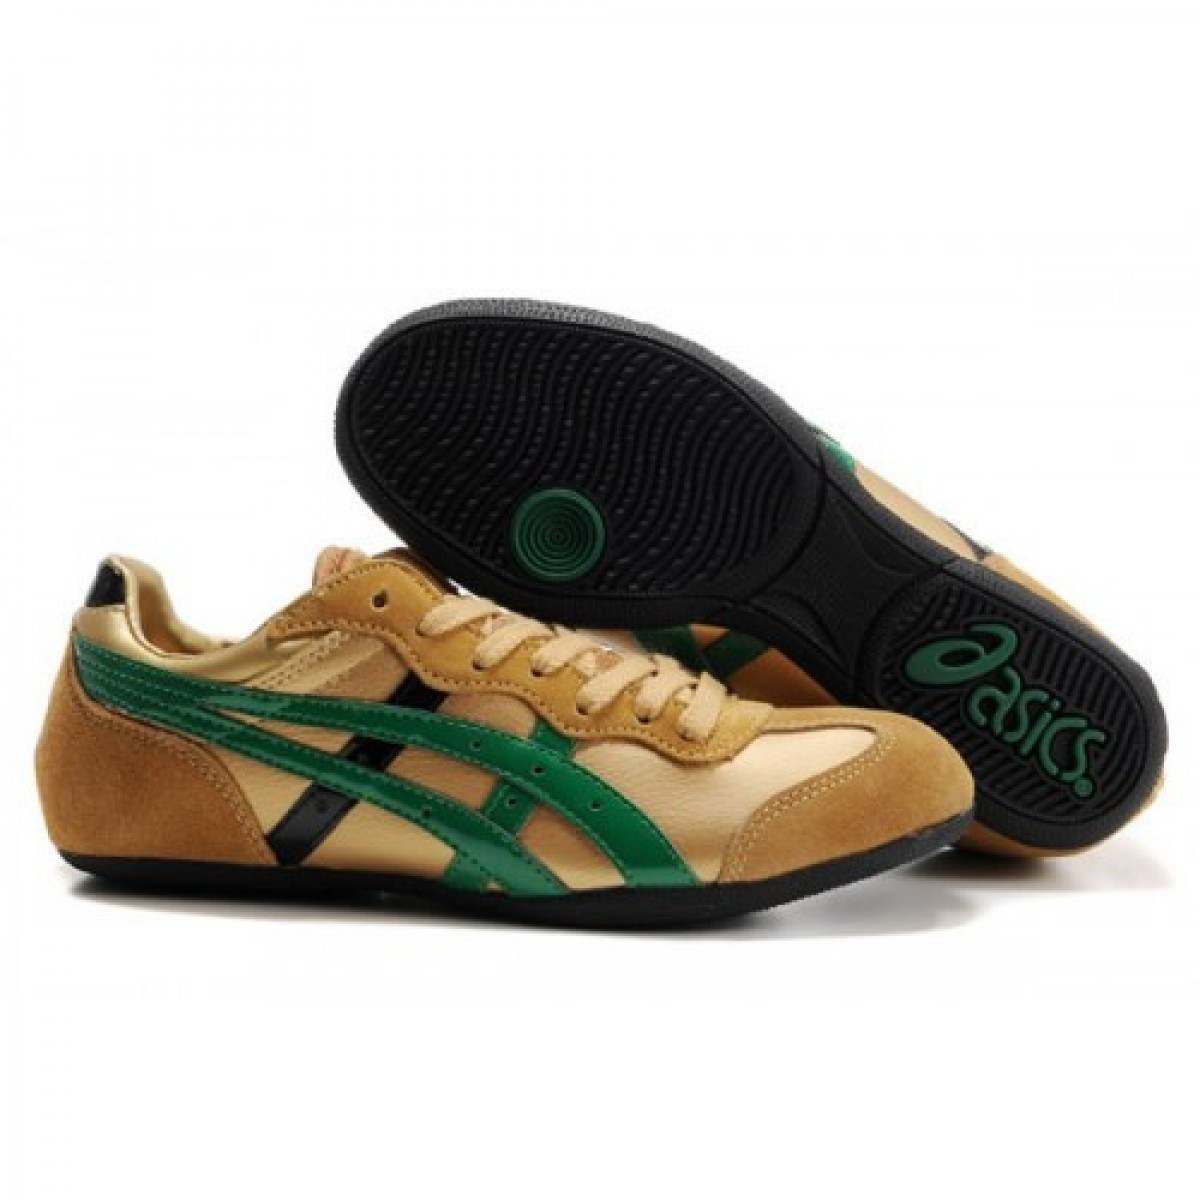 VQ5534 Soldes Asics Whizzer Lo or chaussures chaussures vert noir 35025973 Pas Cher